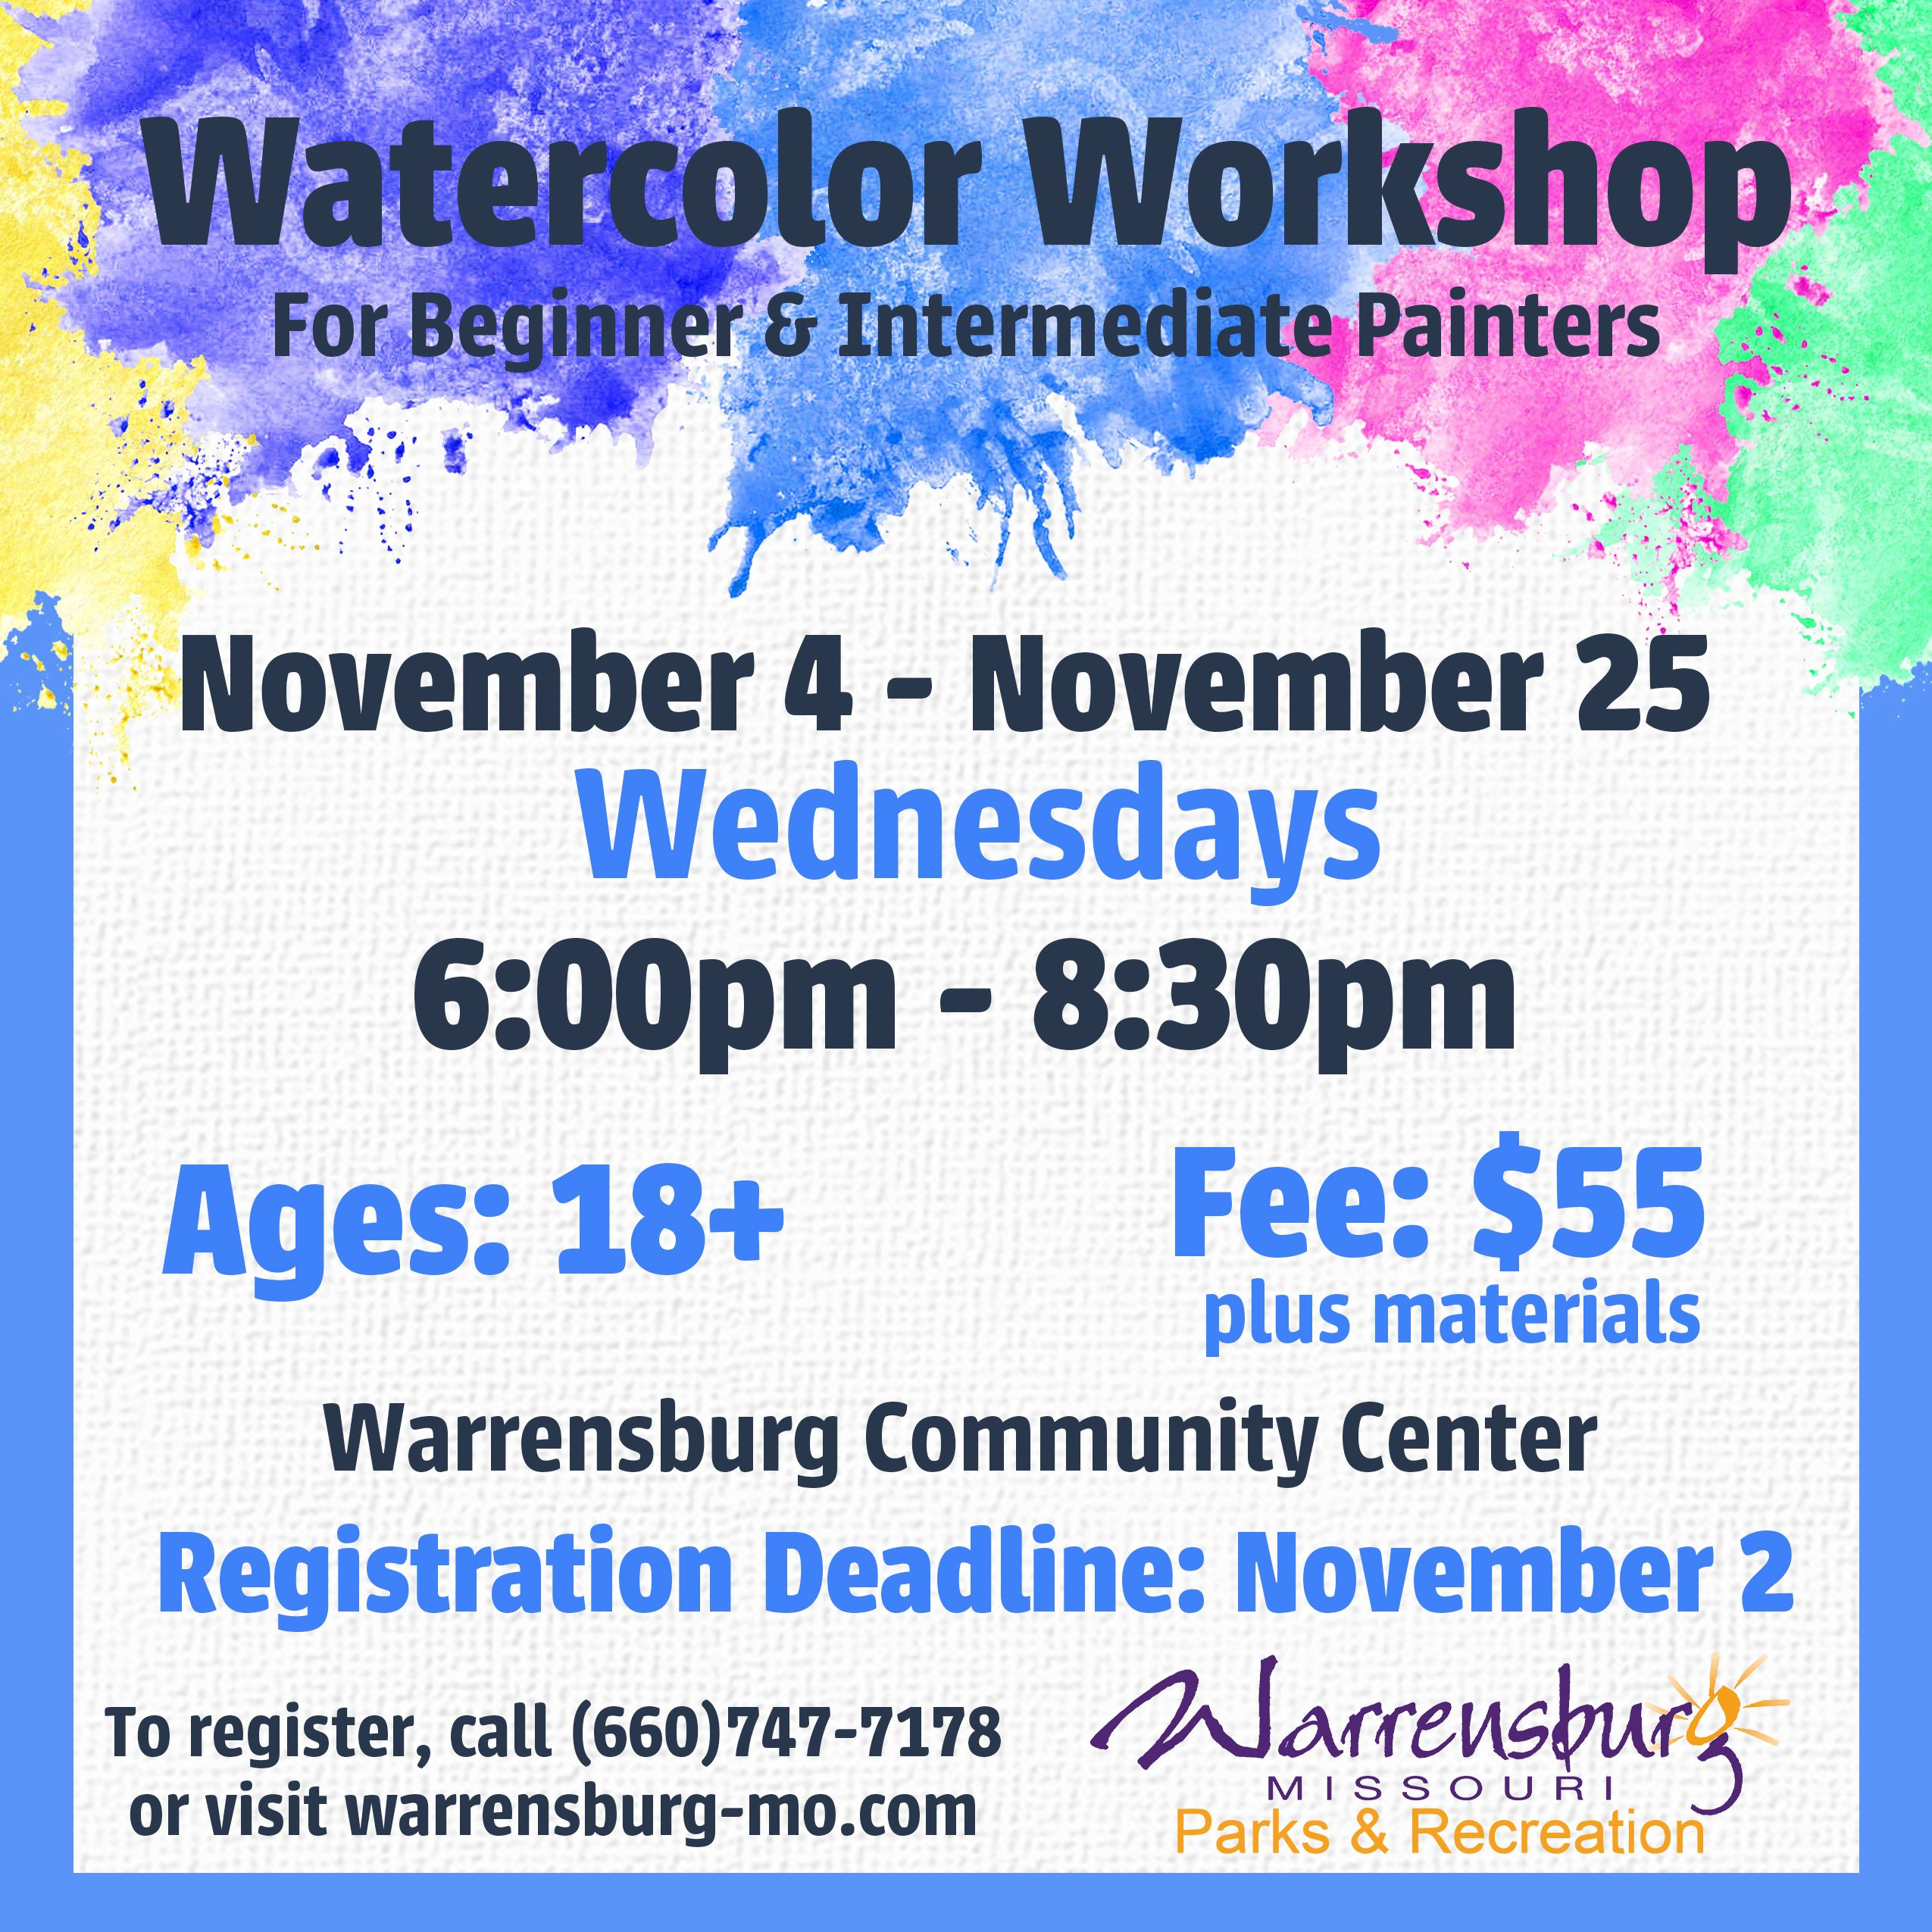 WatercolorWorkshopWeb Fall 2020 Session 1